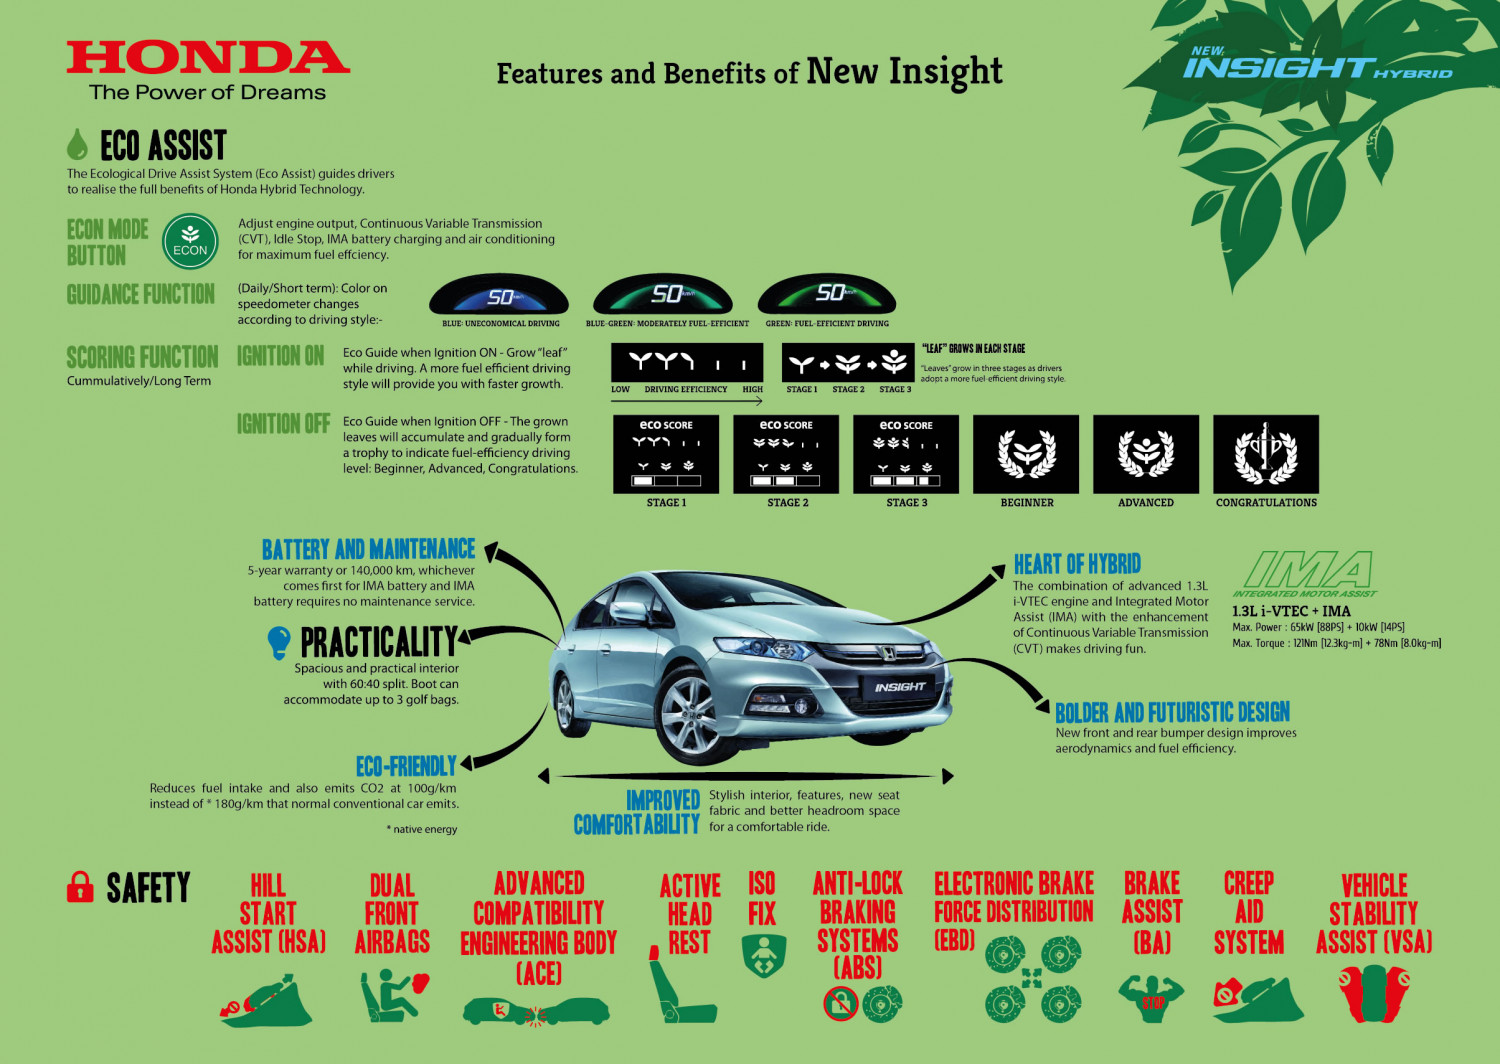 Features and Benefits of New Insight Infographic